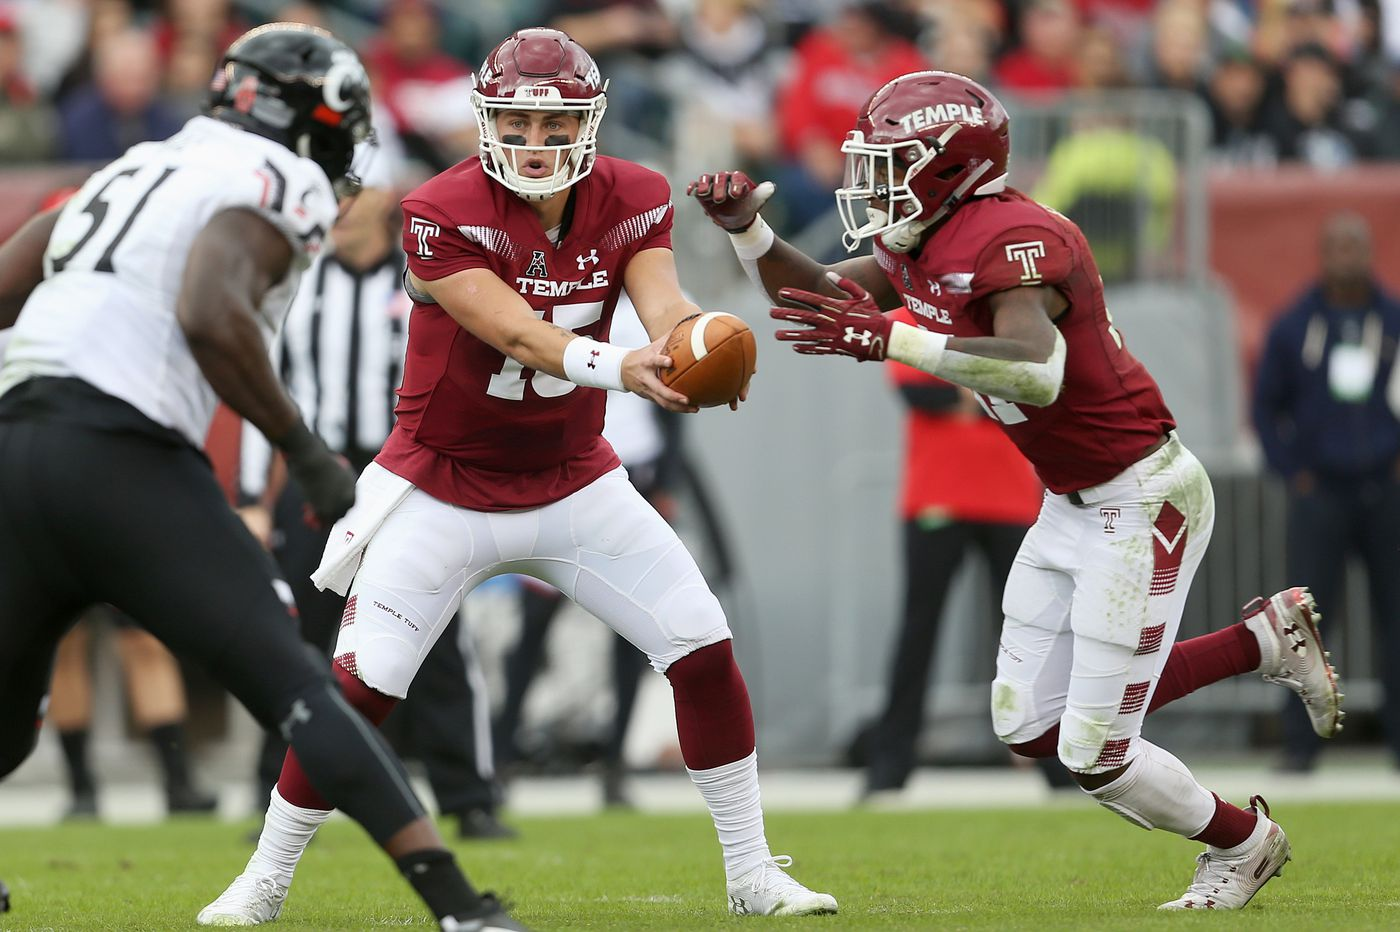 Temple picked to finish fourth in East Division in AAC preseason football poll